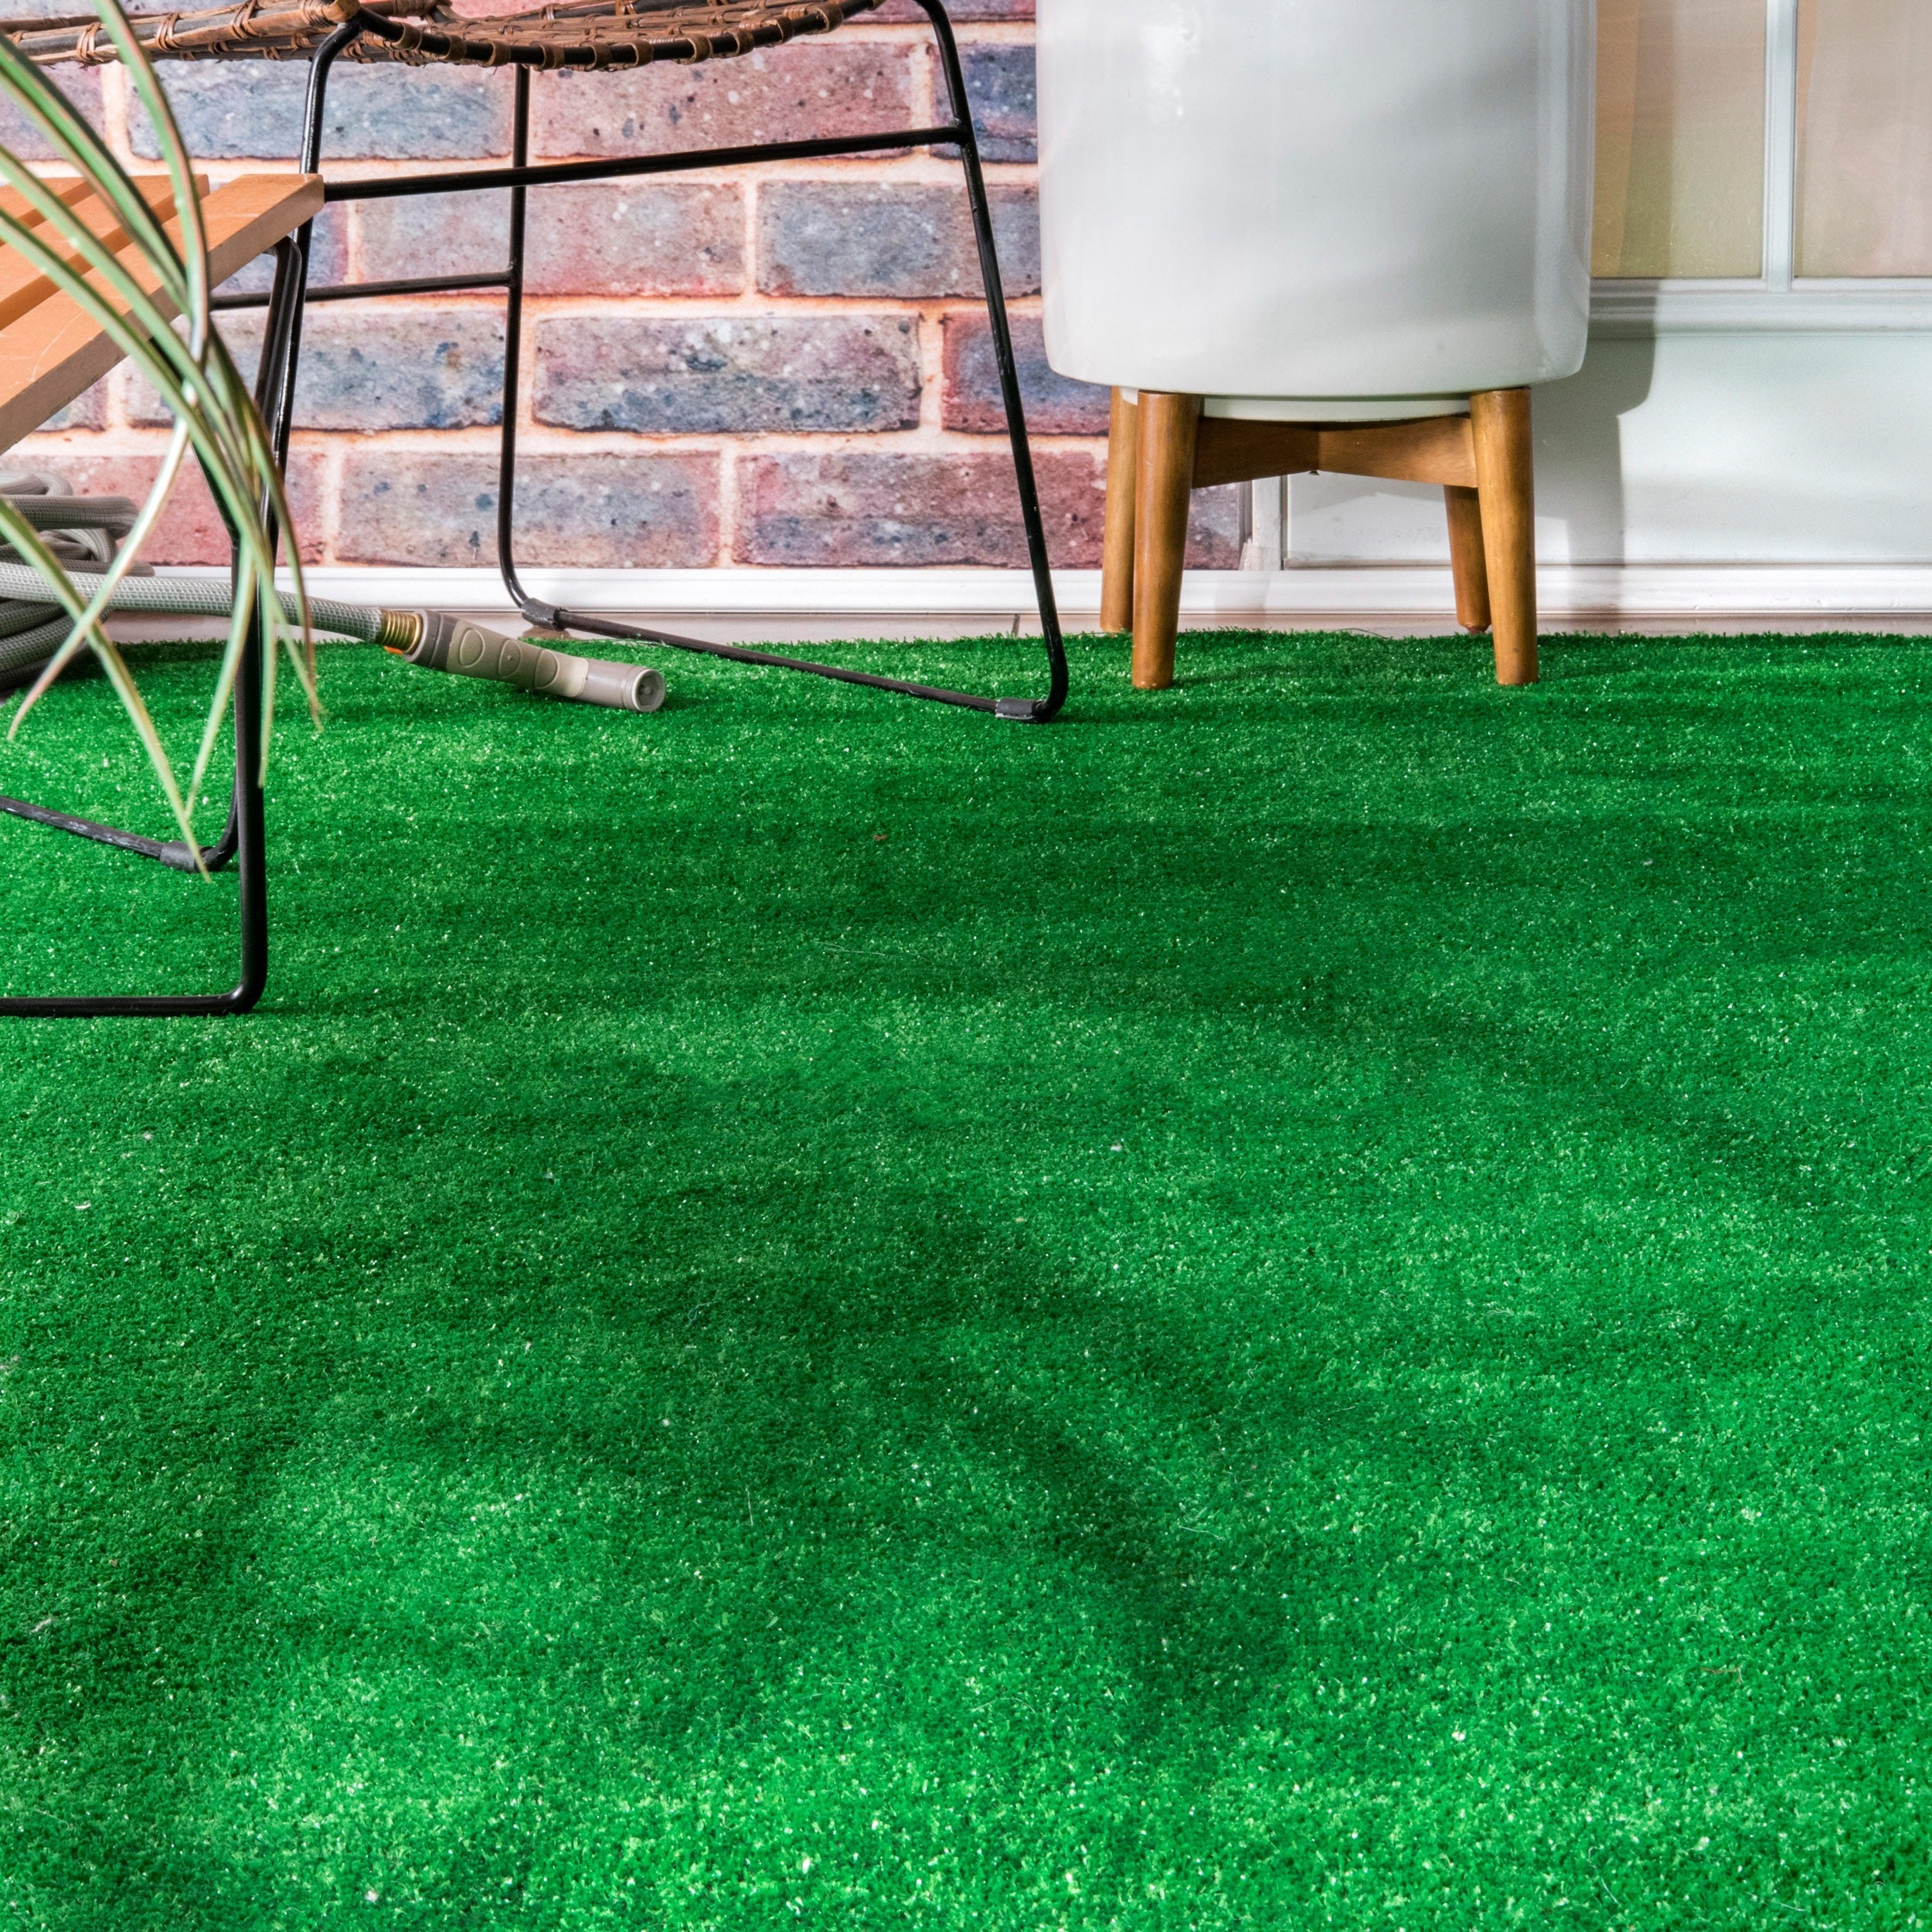 Merveilleux Shop NuLOOM Artificial Grass Outdoor Lawn Turf Green Patio Rug   5u0027 X 8u0027    On Sale   Free Shipping Today   Overstock.com   10412923